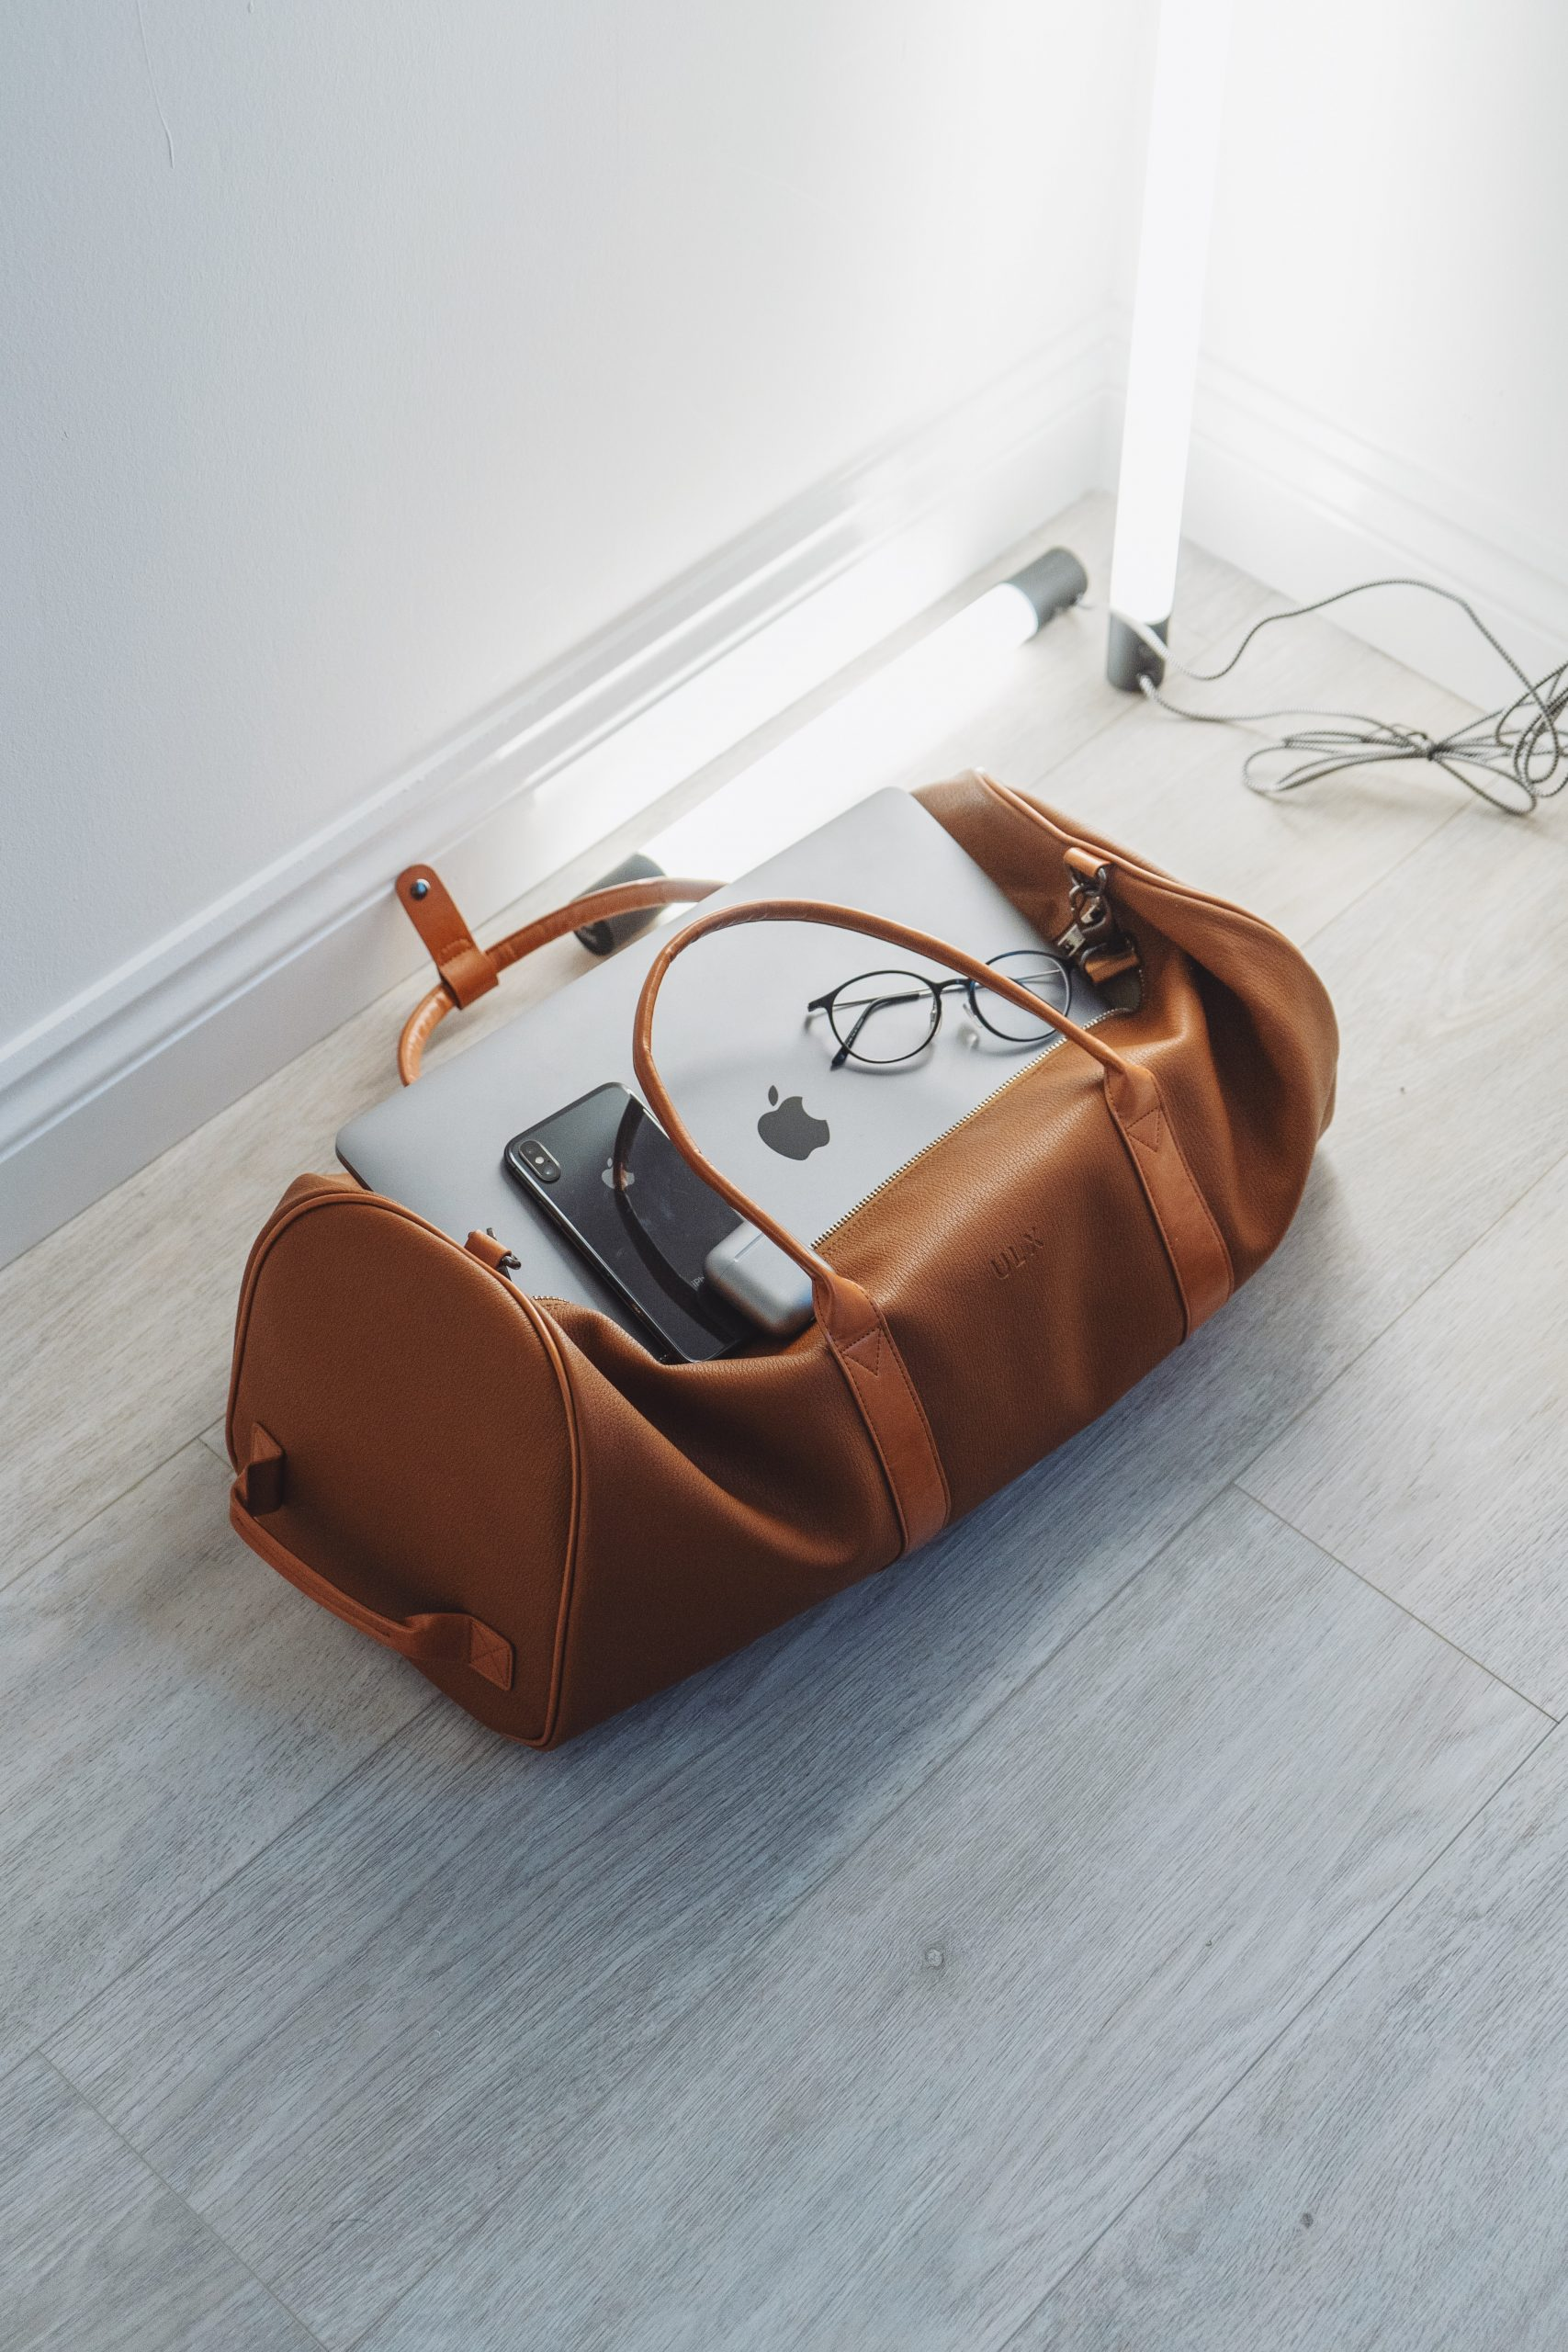 Leather carry on bag with glasses, laptop, and phone